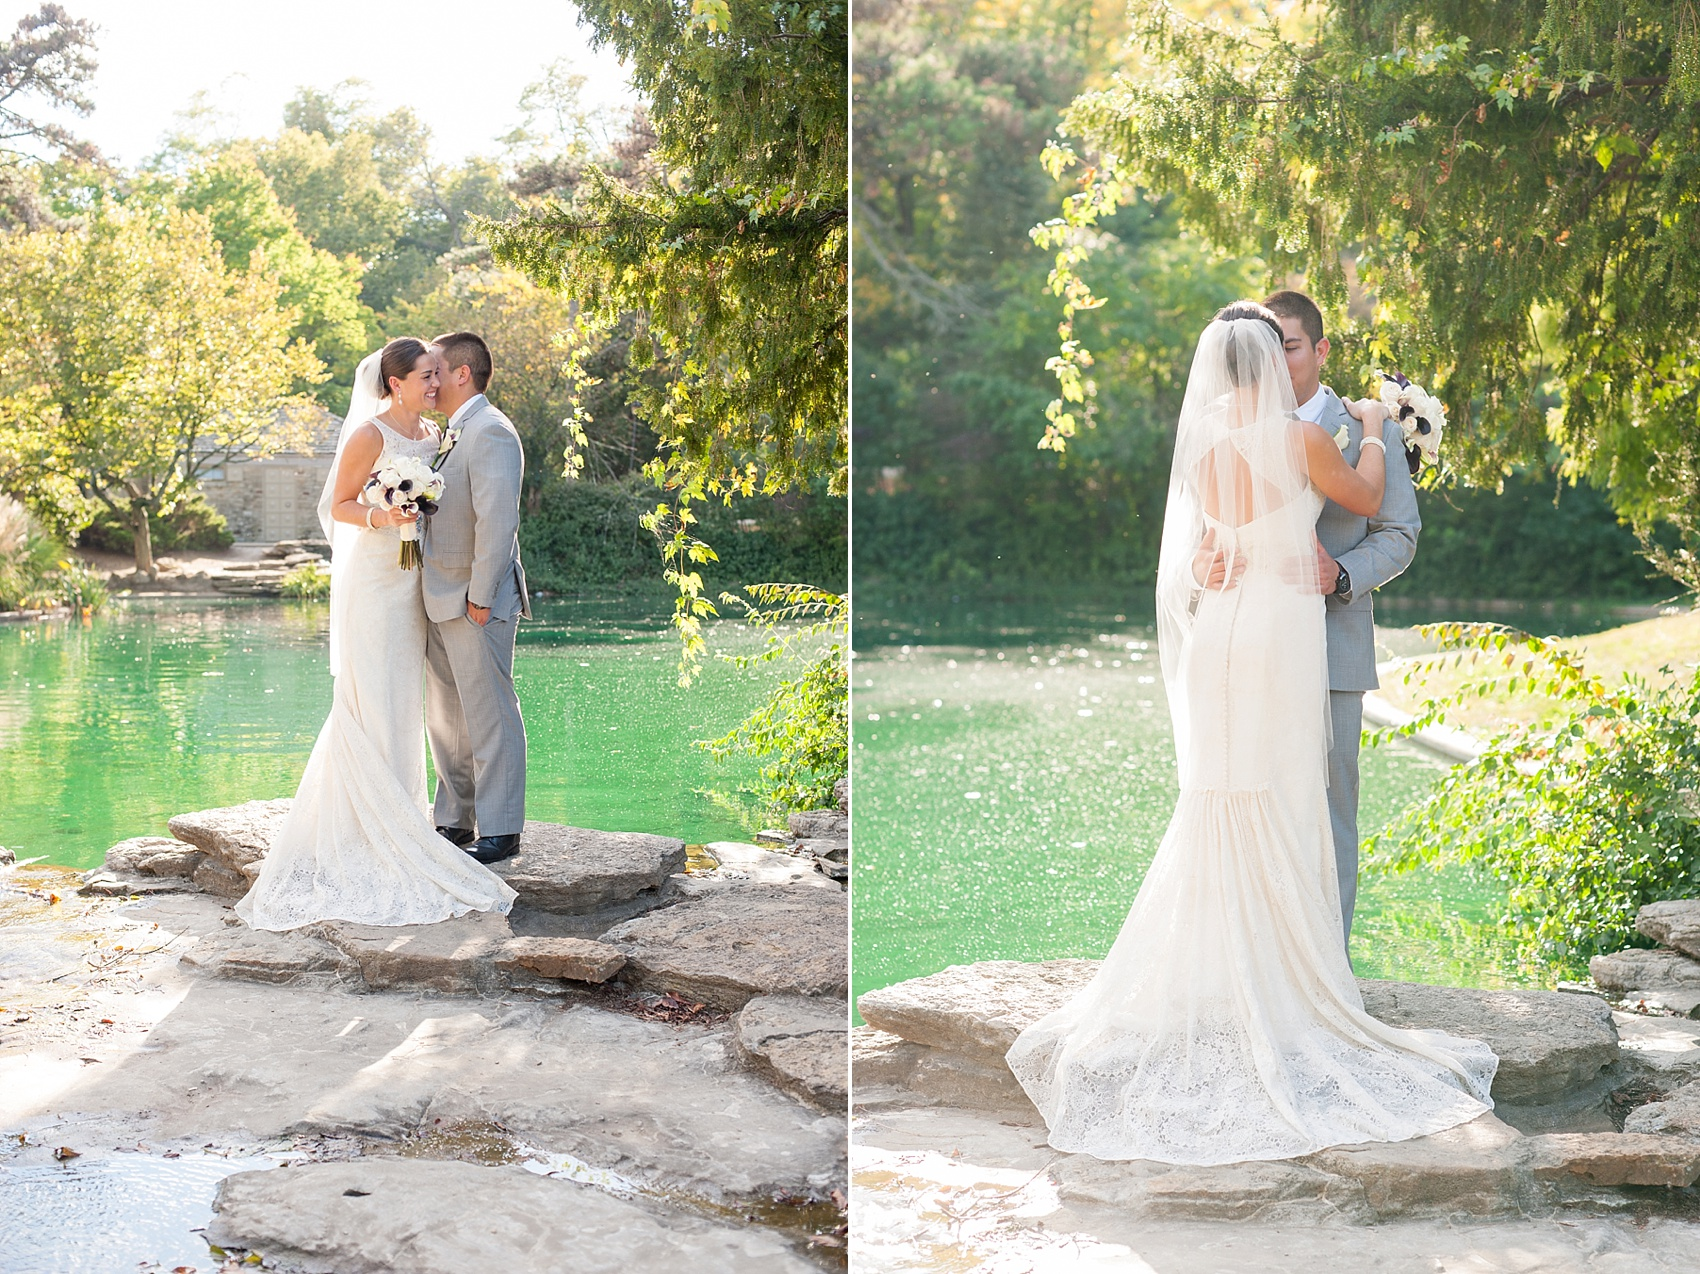 Portraits at Eden Park for downtown Cincinnati, Ohio wedding at The Center. Photos by Mikkel Paige Photography.